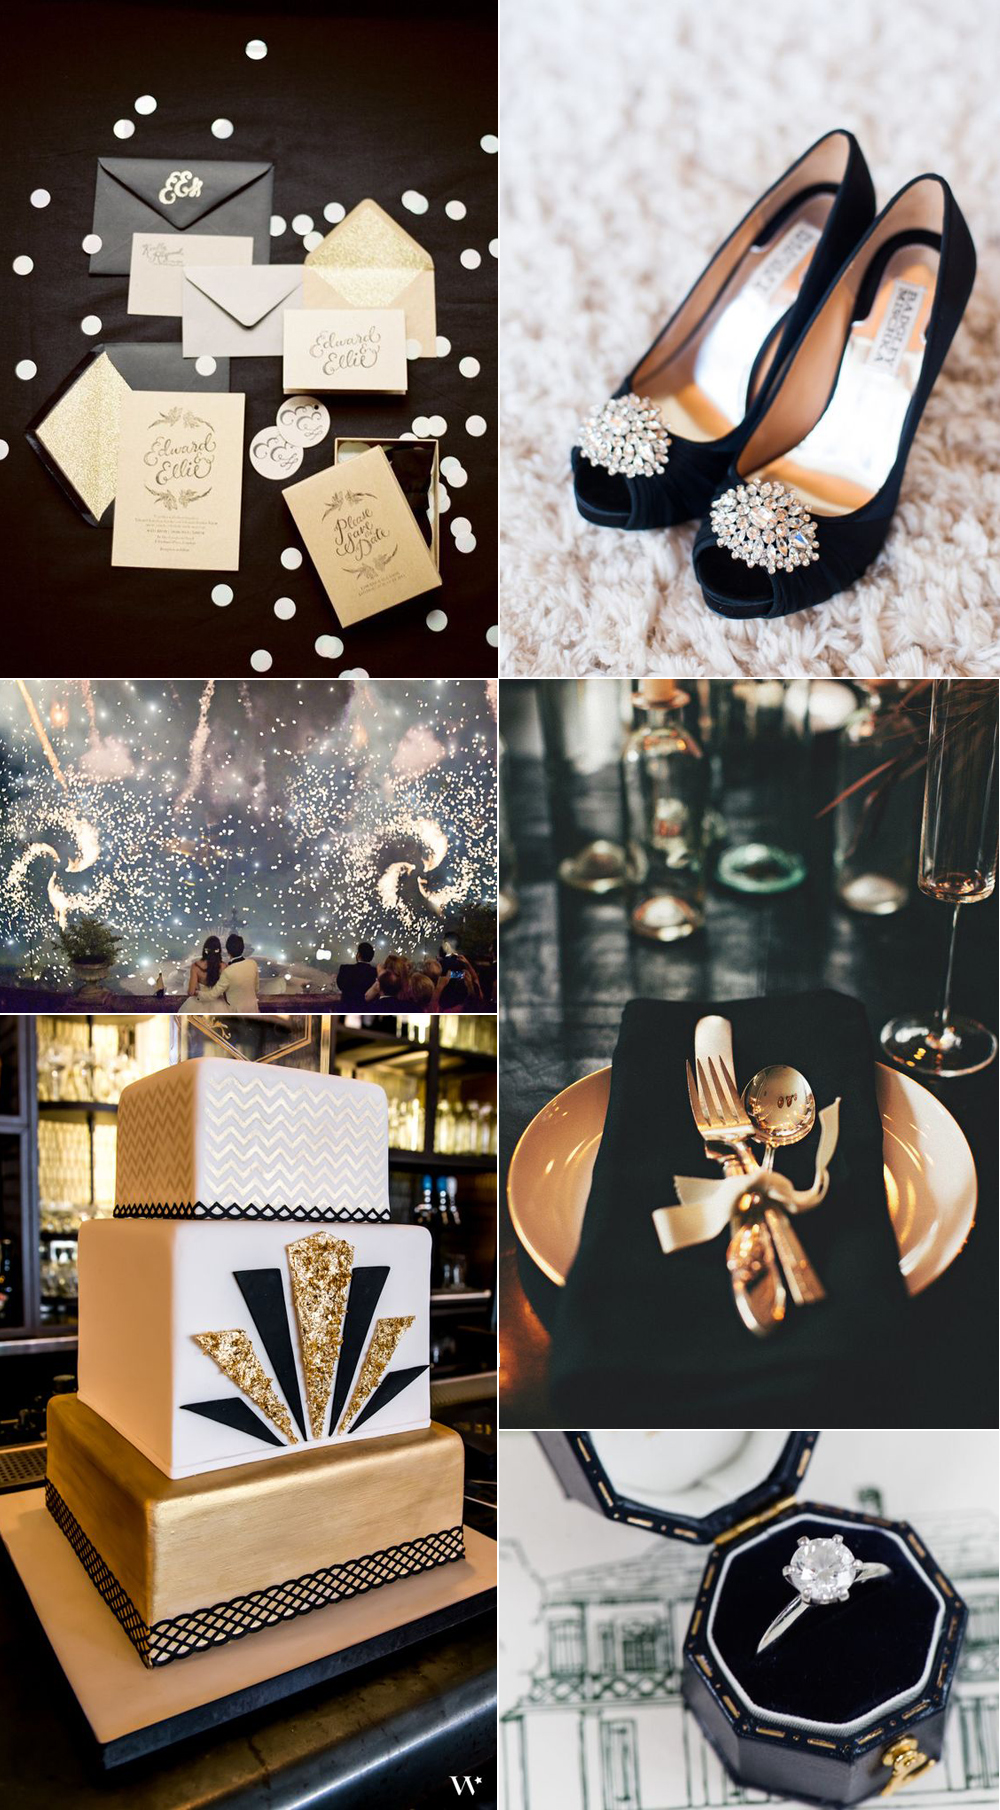 {Image Sources: Invites featured on  Style Me Pretty ; black heels featured on  Style Me Pretty  - photo by  Candice Benjamin ; fireworks featured on  Style Me Pretty  - photo by  Emma & Clau ; gold table setting featured on  Style Me Pretty  - photo by  Rebecca Hansen ; black and gold cake featured on  Wedding Star ; ring featured on  Style Me Pretty  - photo by  Lance Nicoll }